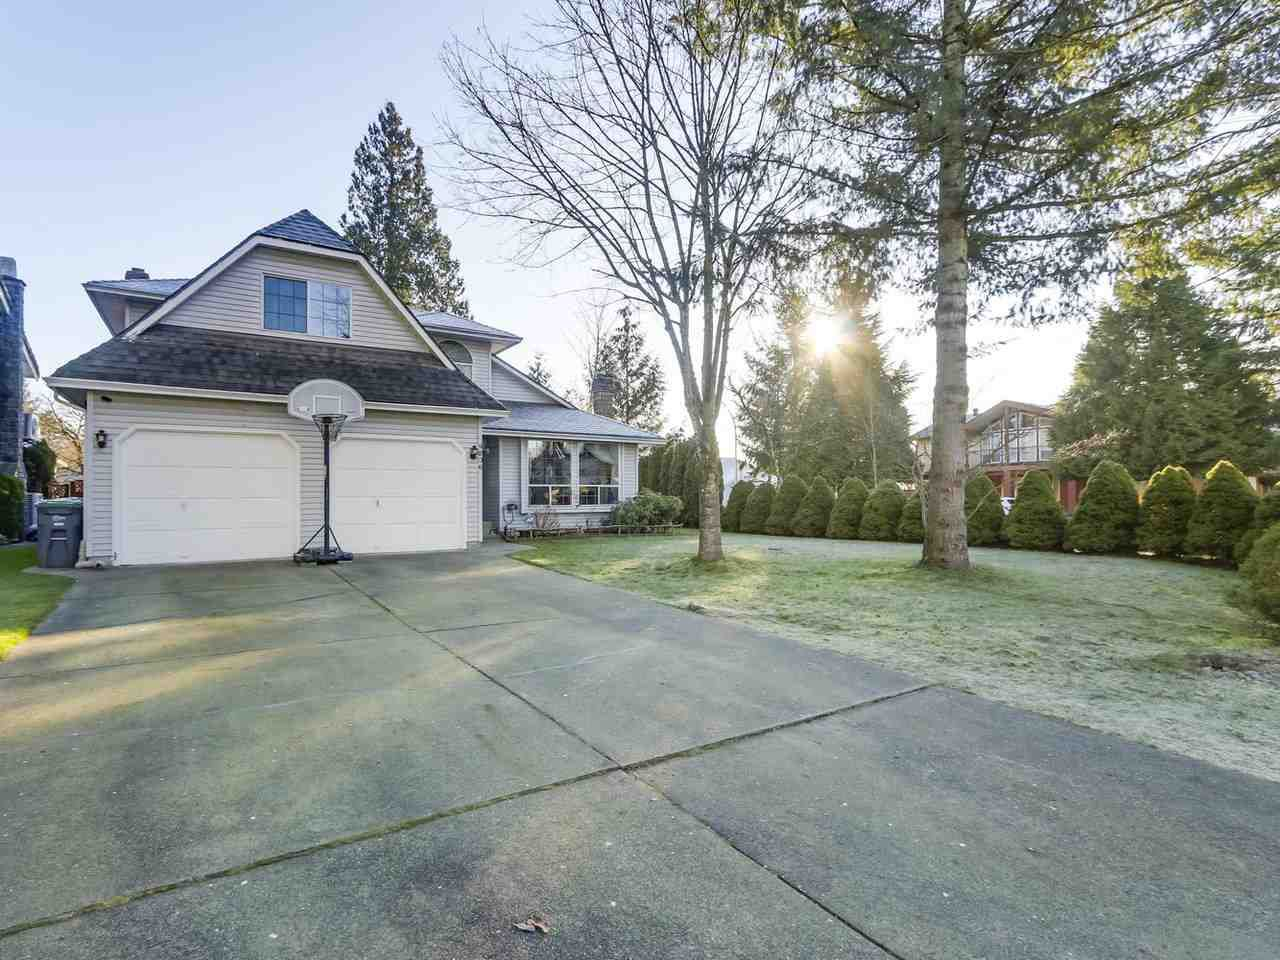 Main Photo: 9806 157 Street in Surrey: Guildford House for sale (North Surrey)  : MLS®# R2337998